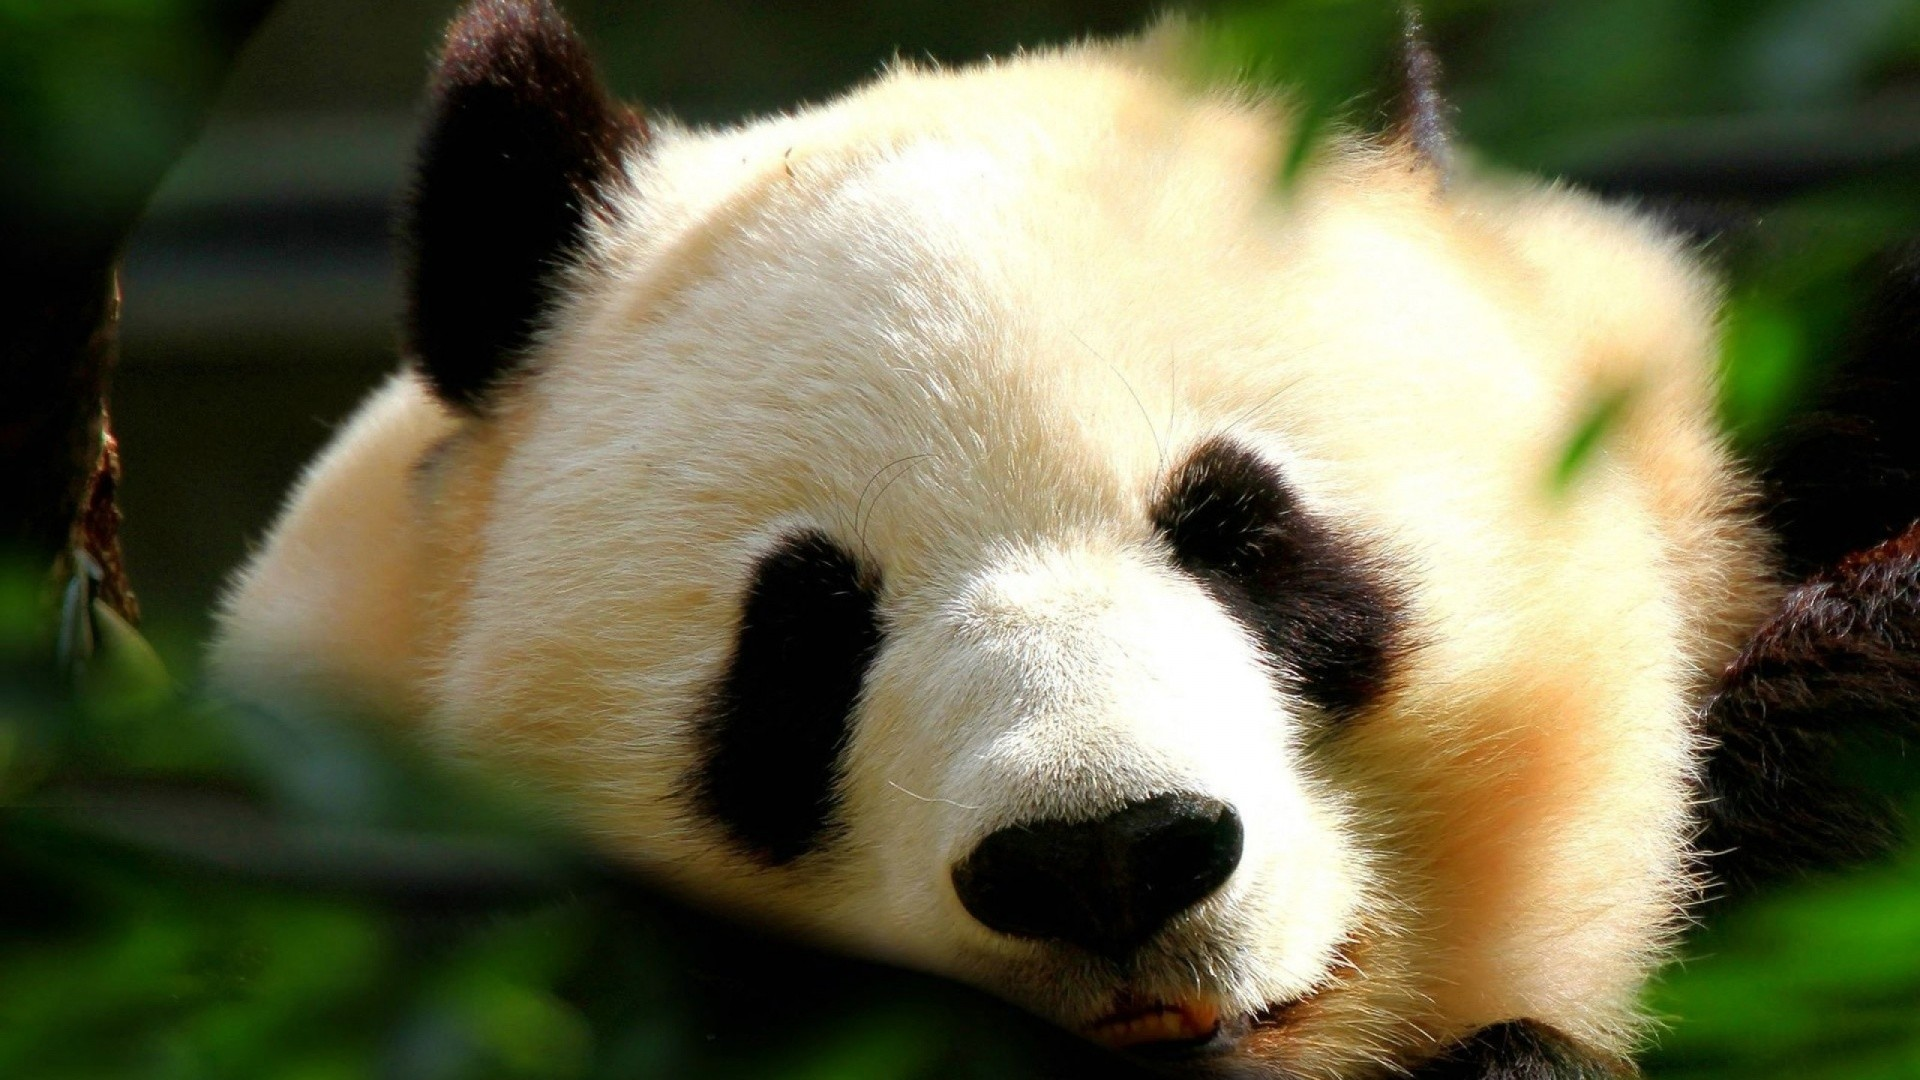 1920x1080 Cute Baby Panda Wallpaper Images Walls Pics Ormond Sheldon 1920 X 1080